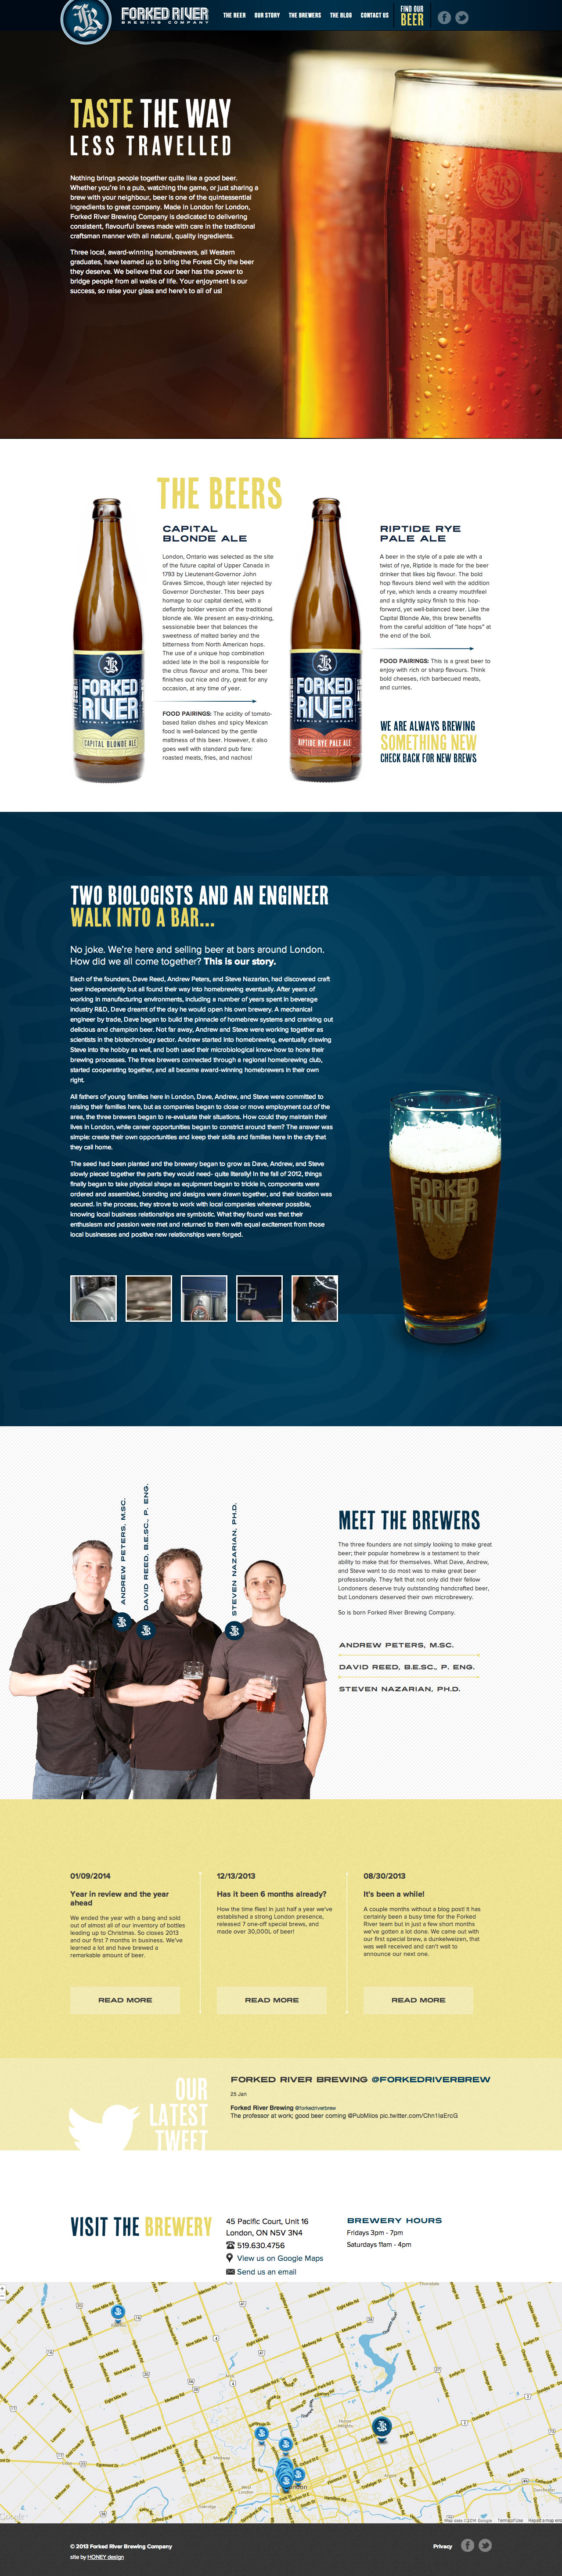 Forked River Brewing Company Website Screenshot